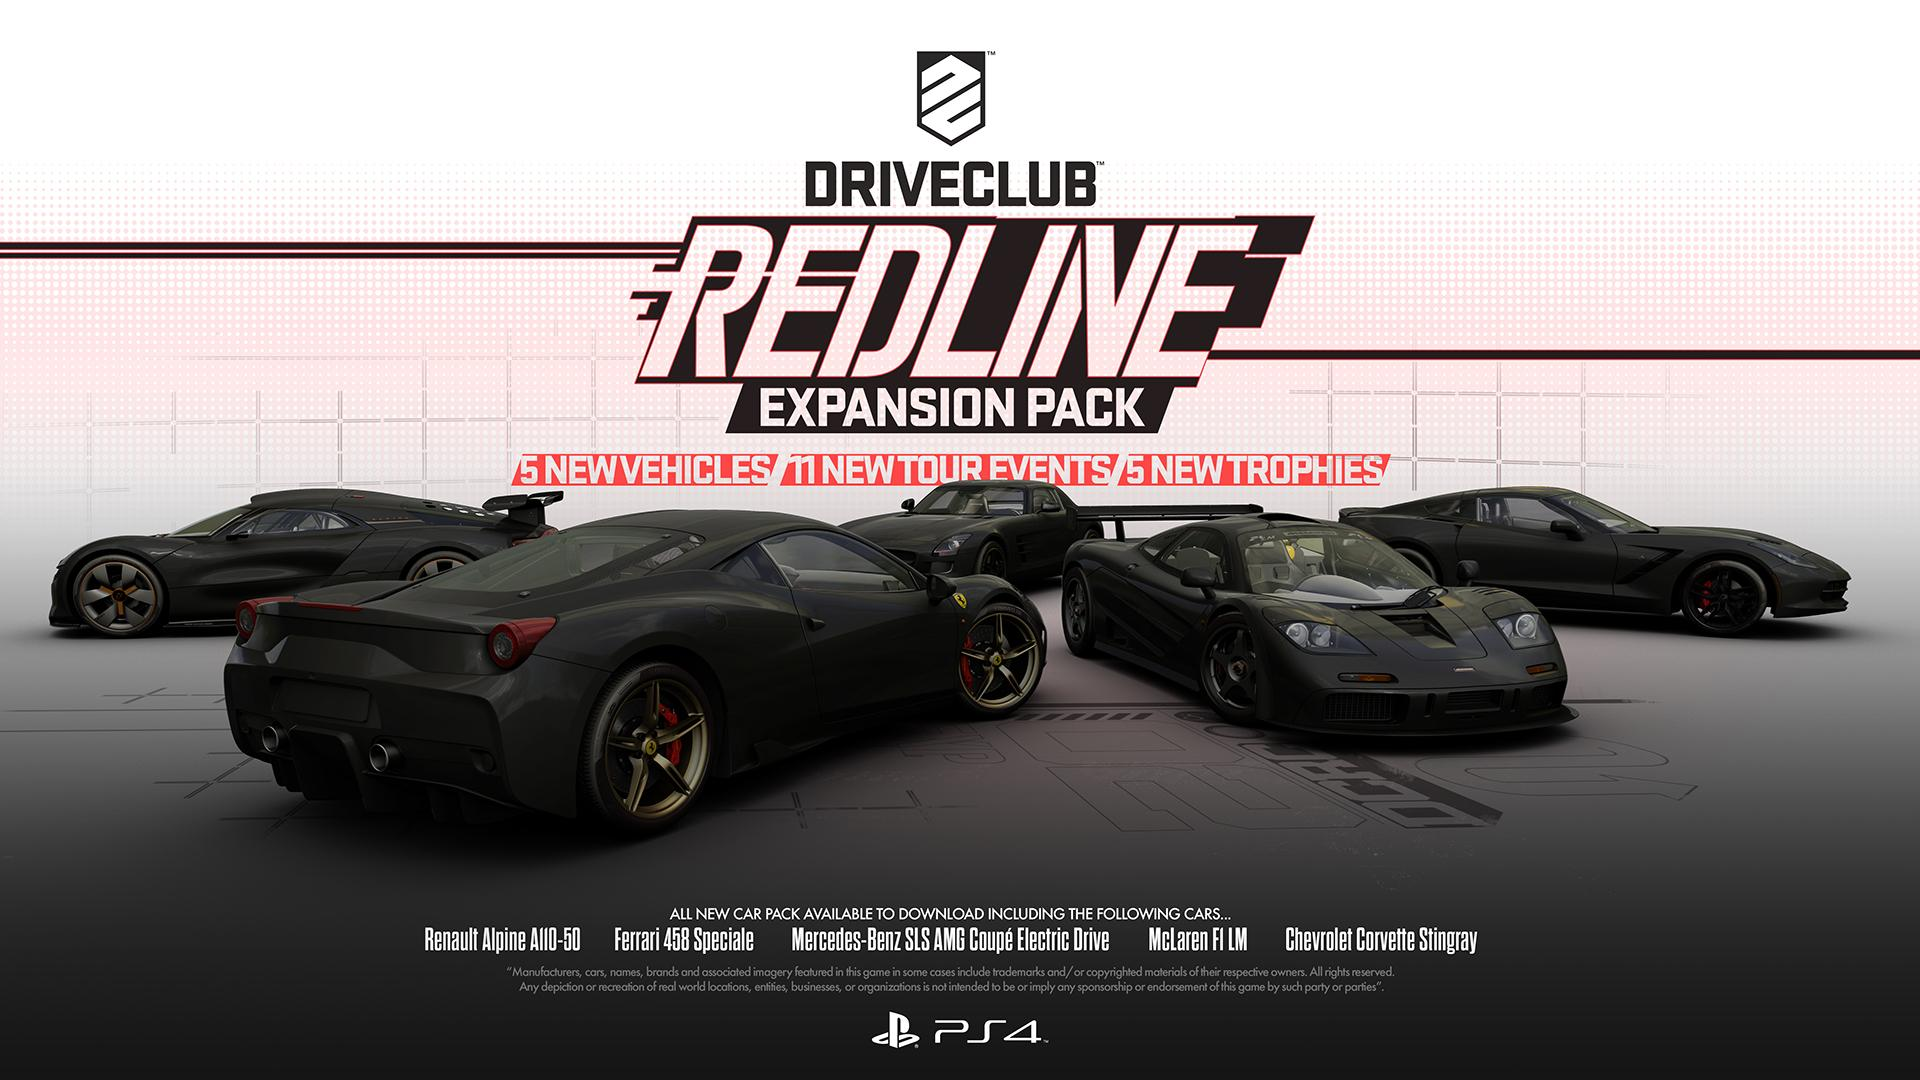 driveclub-redline-expansion-pack